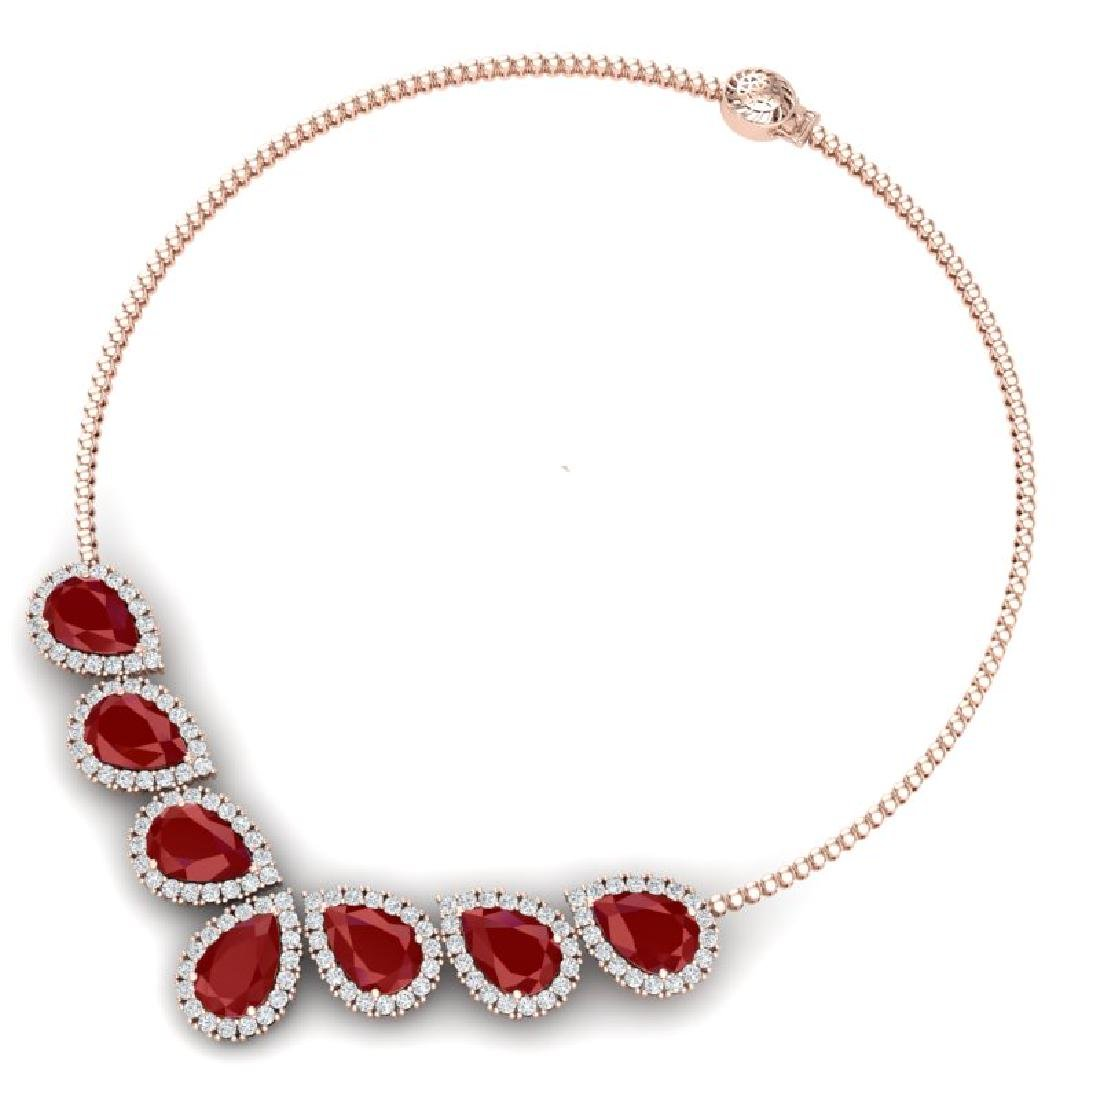 34.72 CTW Royalty Ruby & VS Diamond Necklace 18K Rose - 3